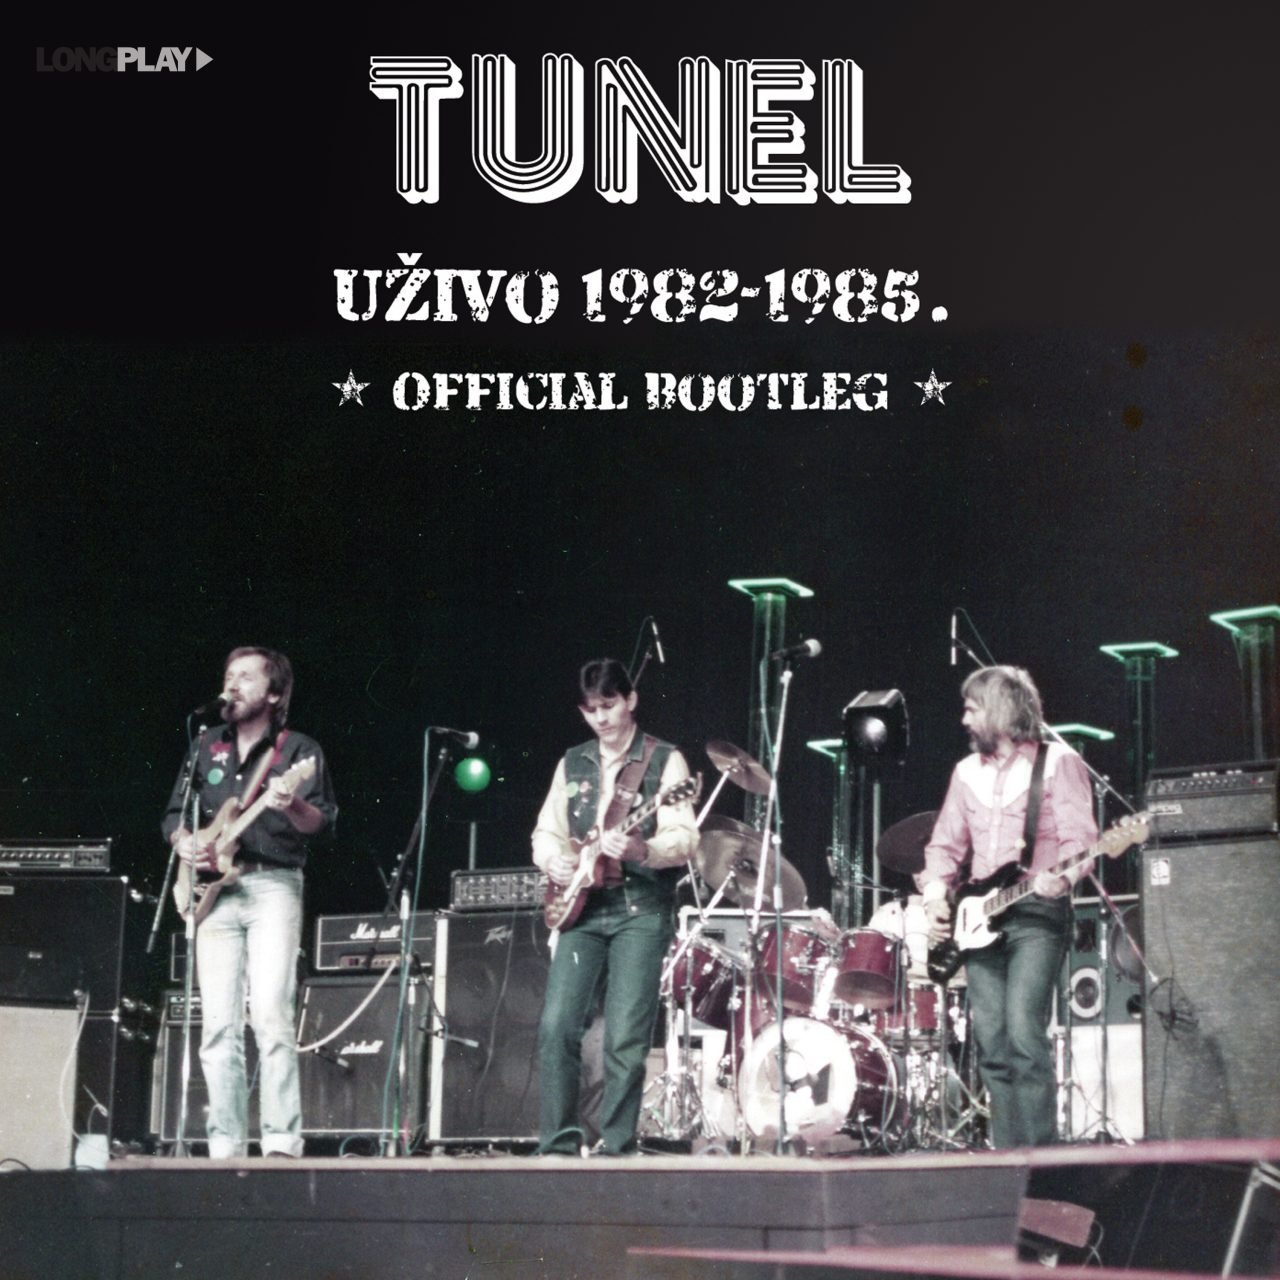 Tunel – Uživo 1982-1985. (Official Bootleg)